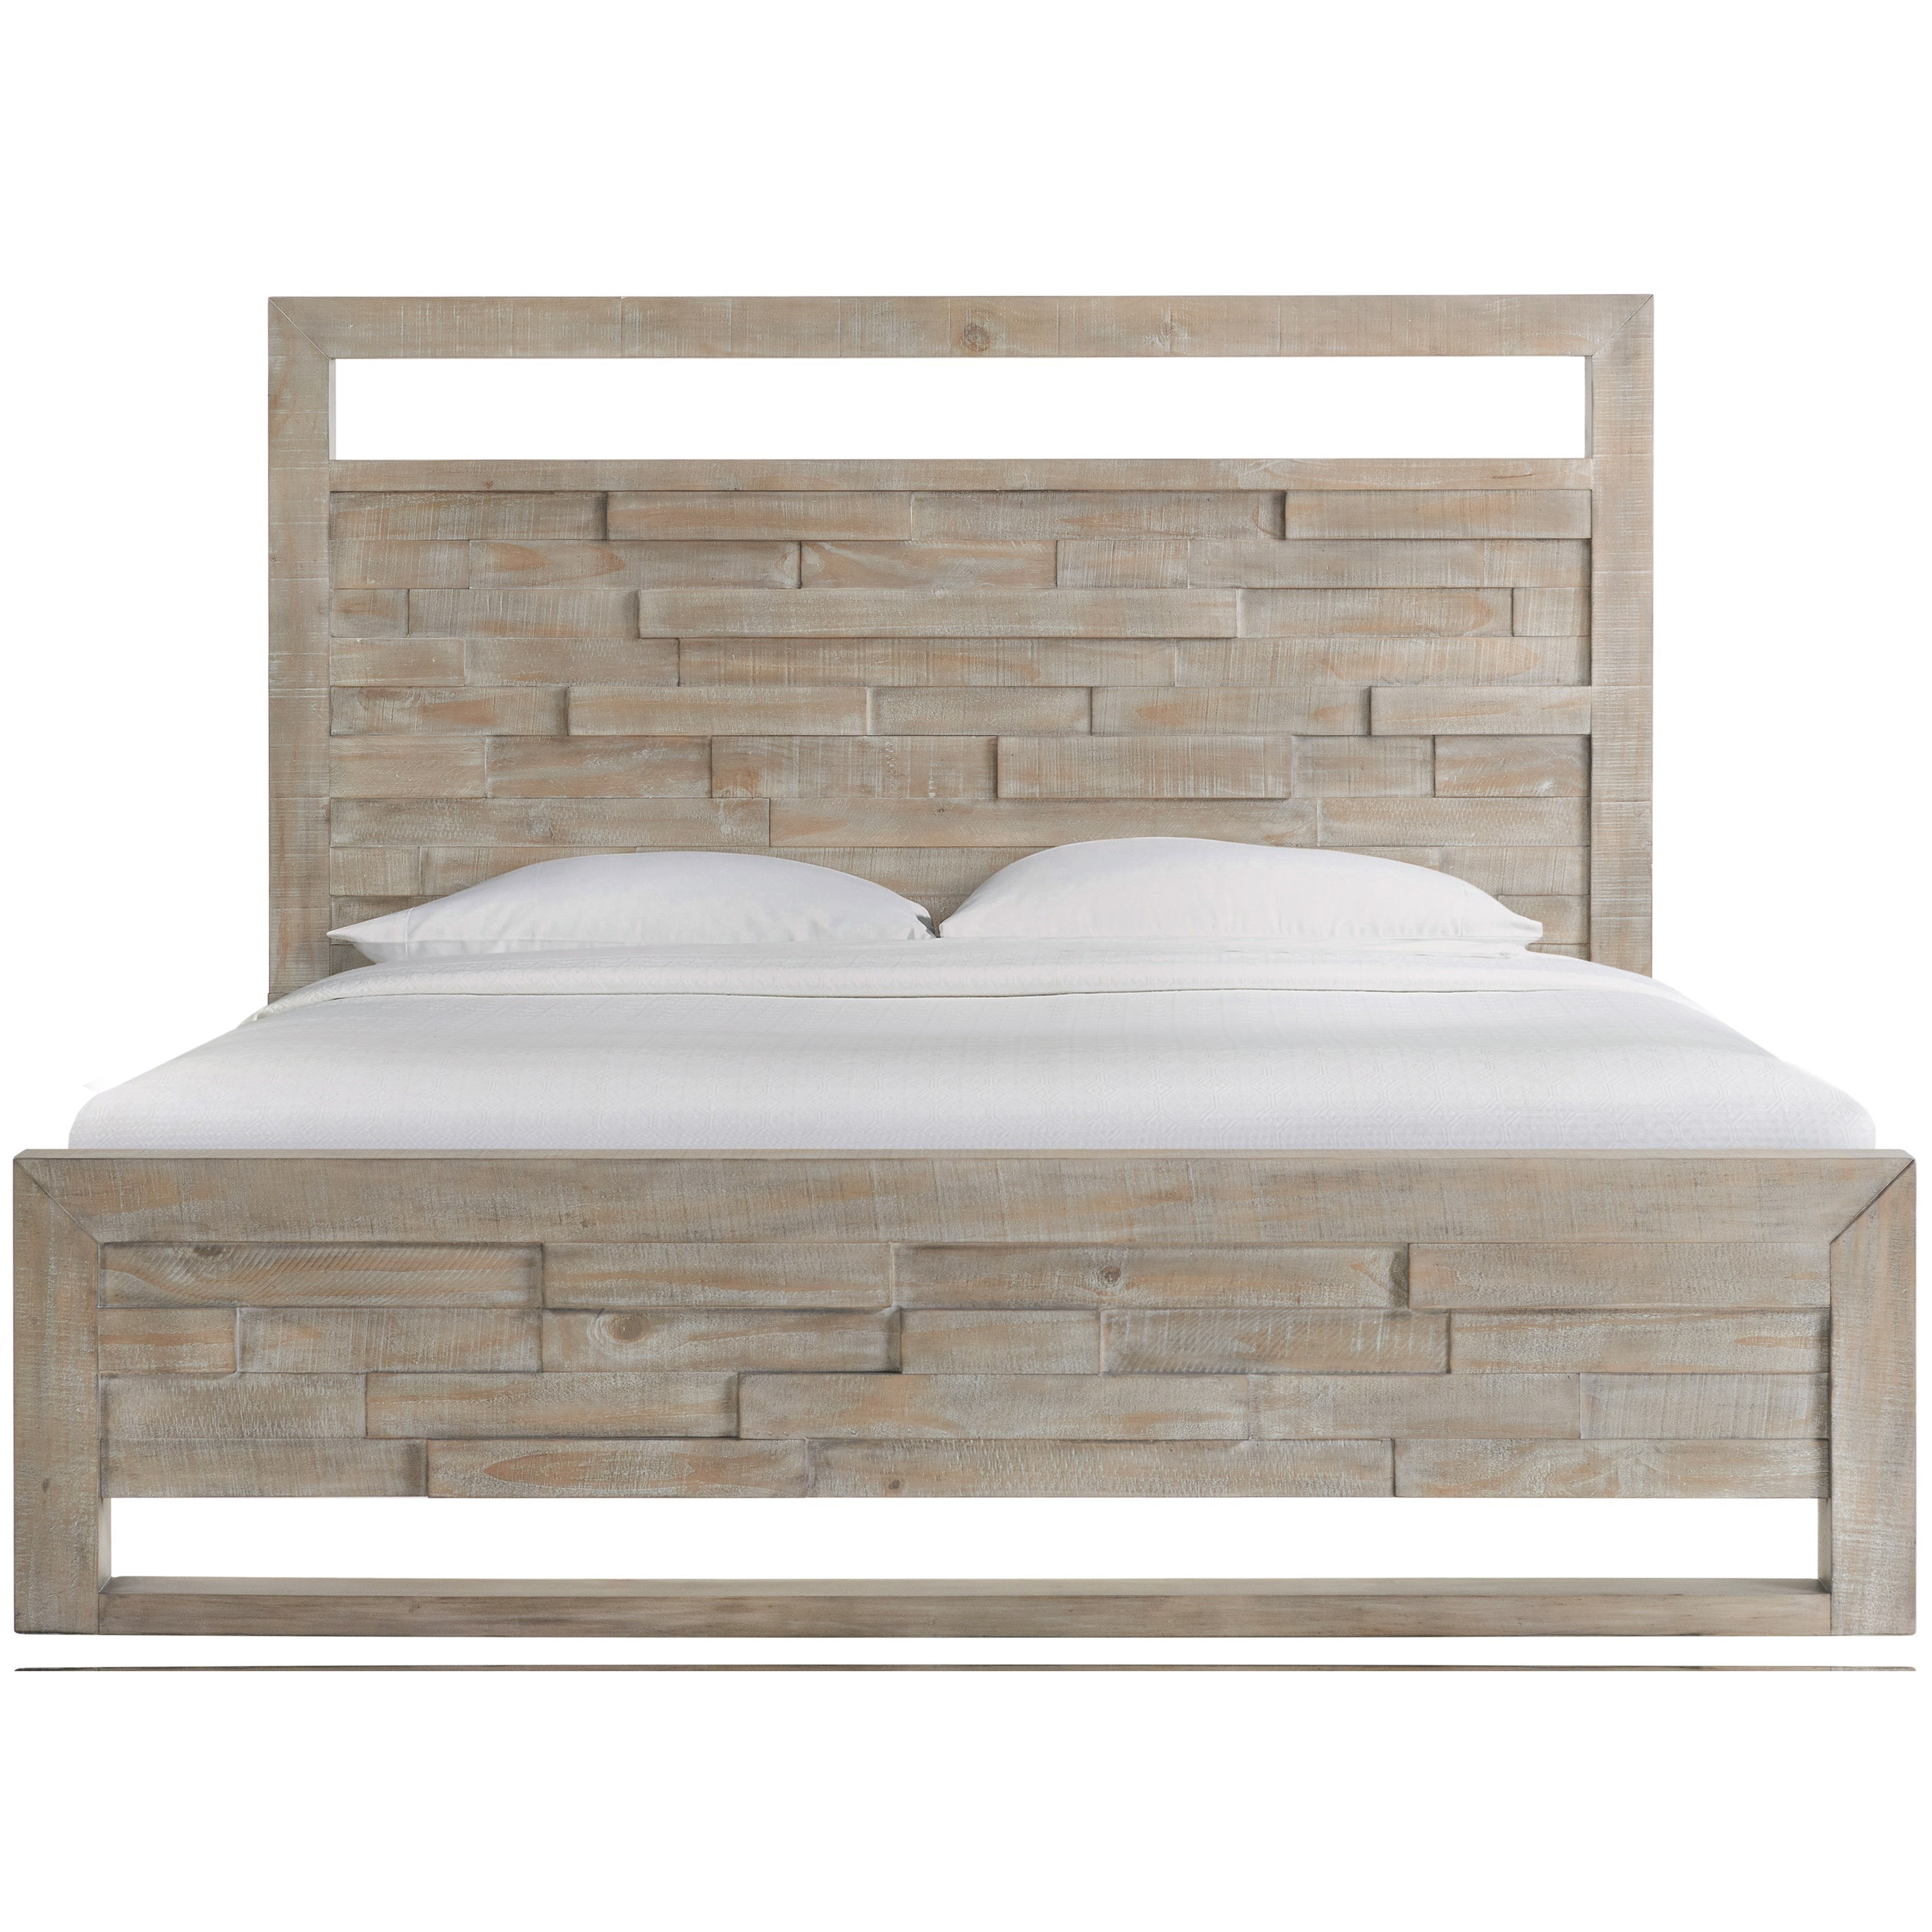 Intrigue King Low Profile Bed by Riverside Furniture at Wilson's Furniture